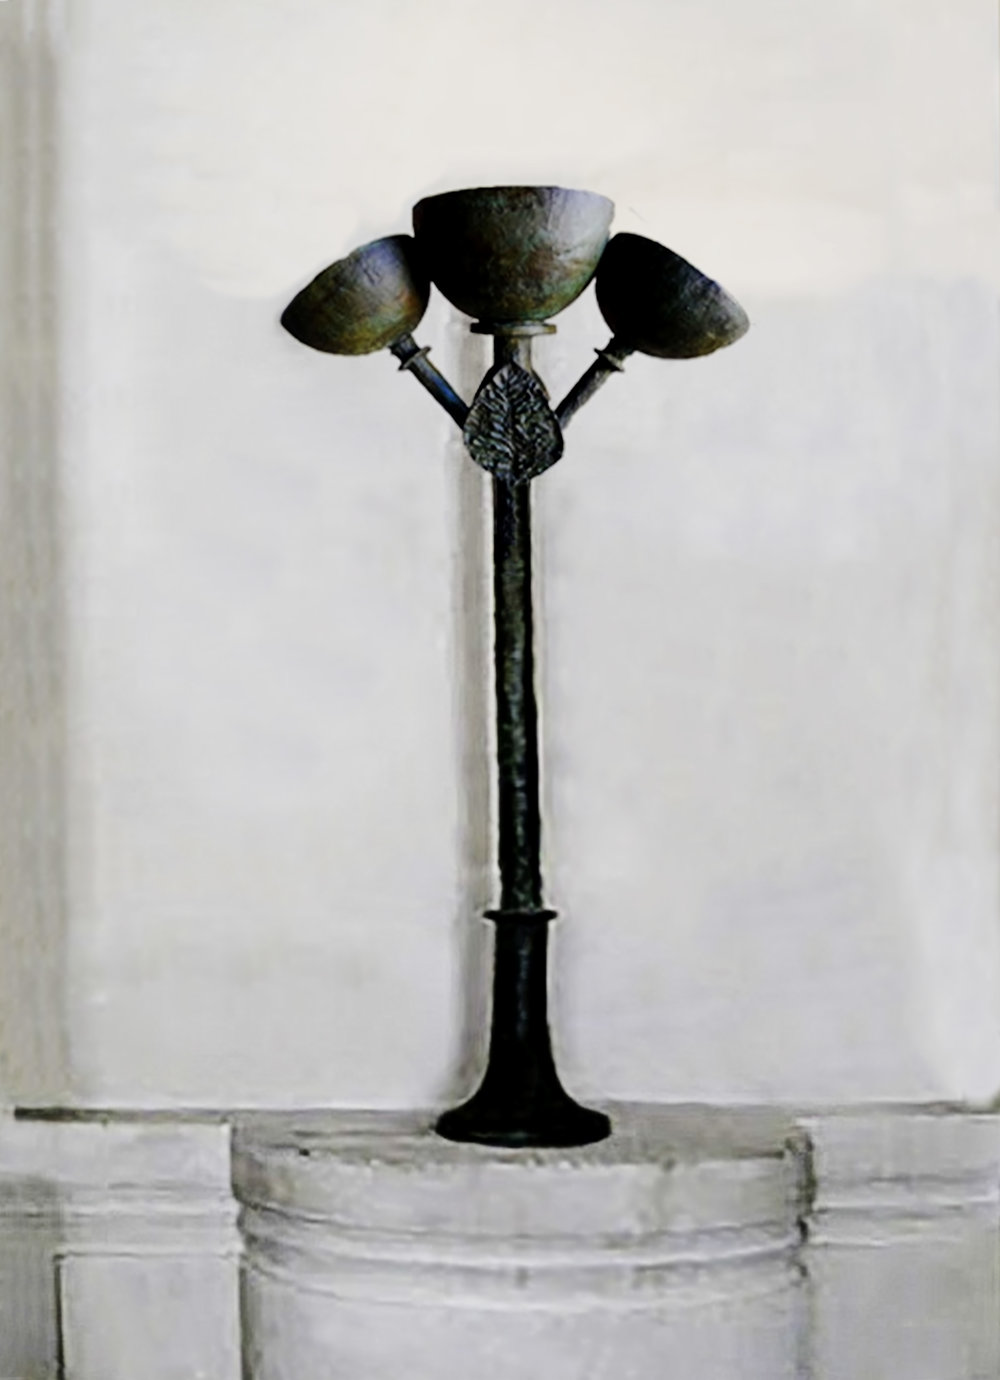 Bronze torchere designed by D. Giacometti on display at Picasso National Museum in Paris